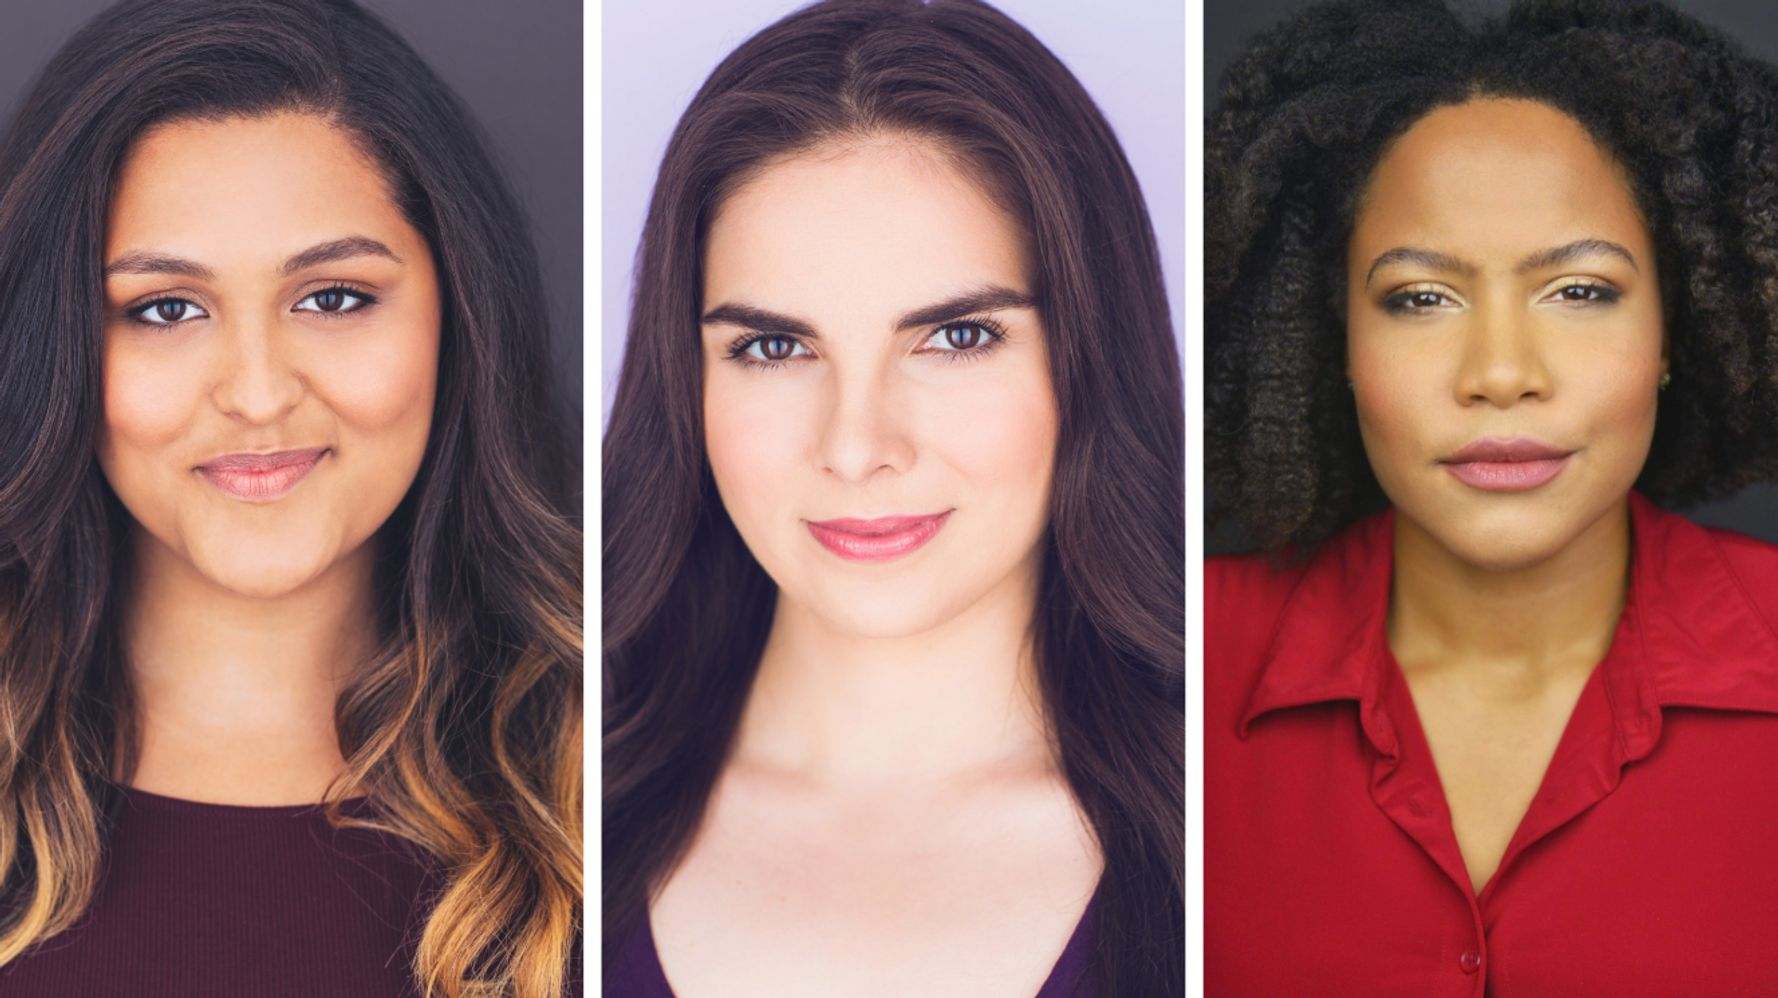 7 Theater Actors Share Their Struggles With Not Having 'The Look'